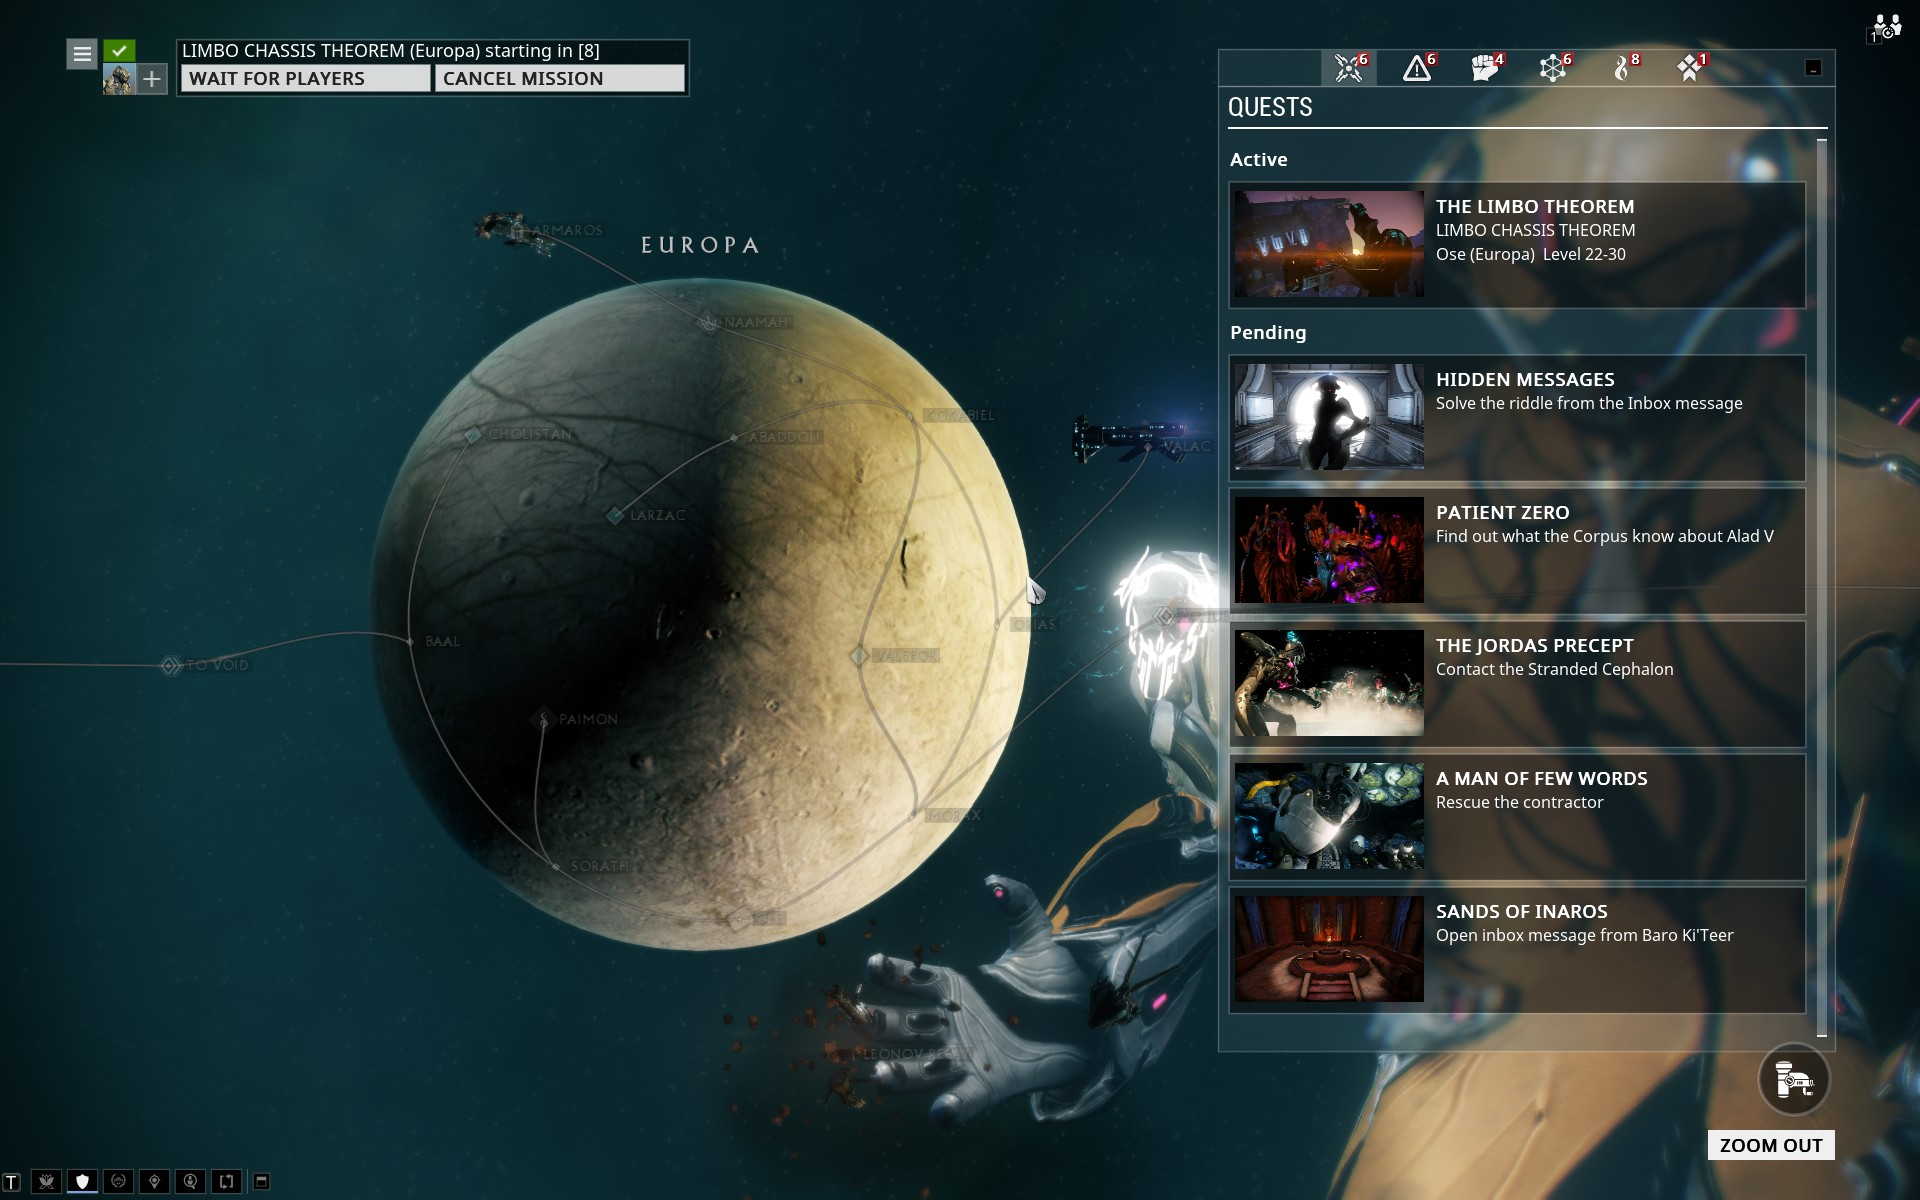 Limbo Systems Excavation Mission Warframe Forums In order to figure everything out, it is essential that you know the whereabouts of the mirage and the various parts of the craft that can later be created in order to build the warframe pieces by pieces. warframe forums